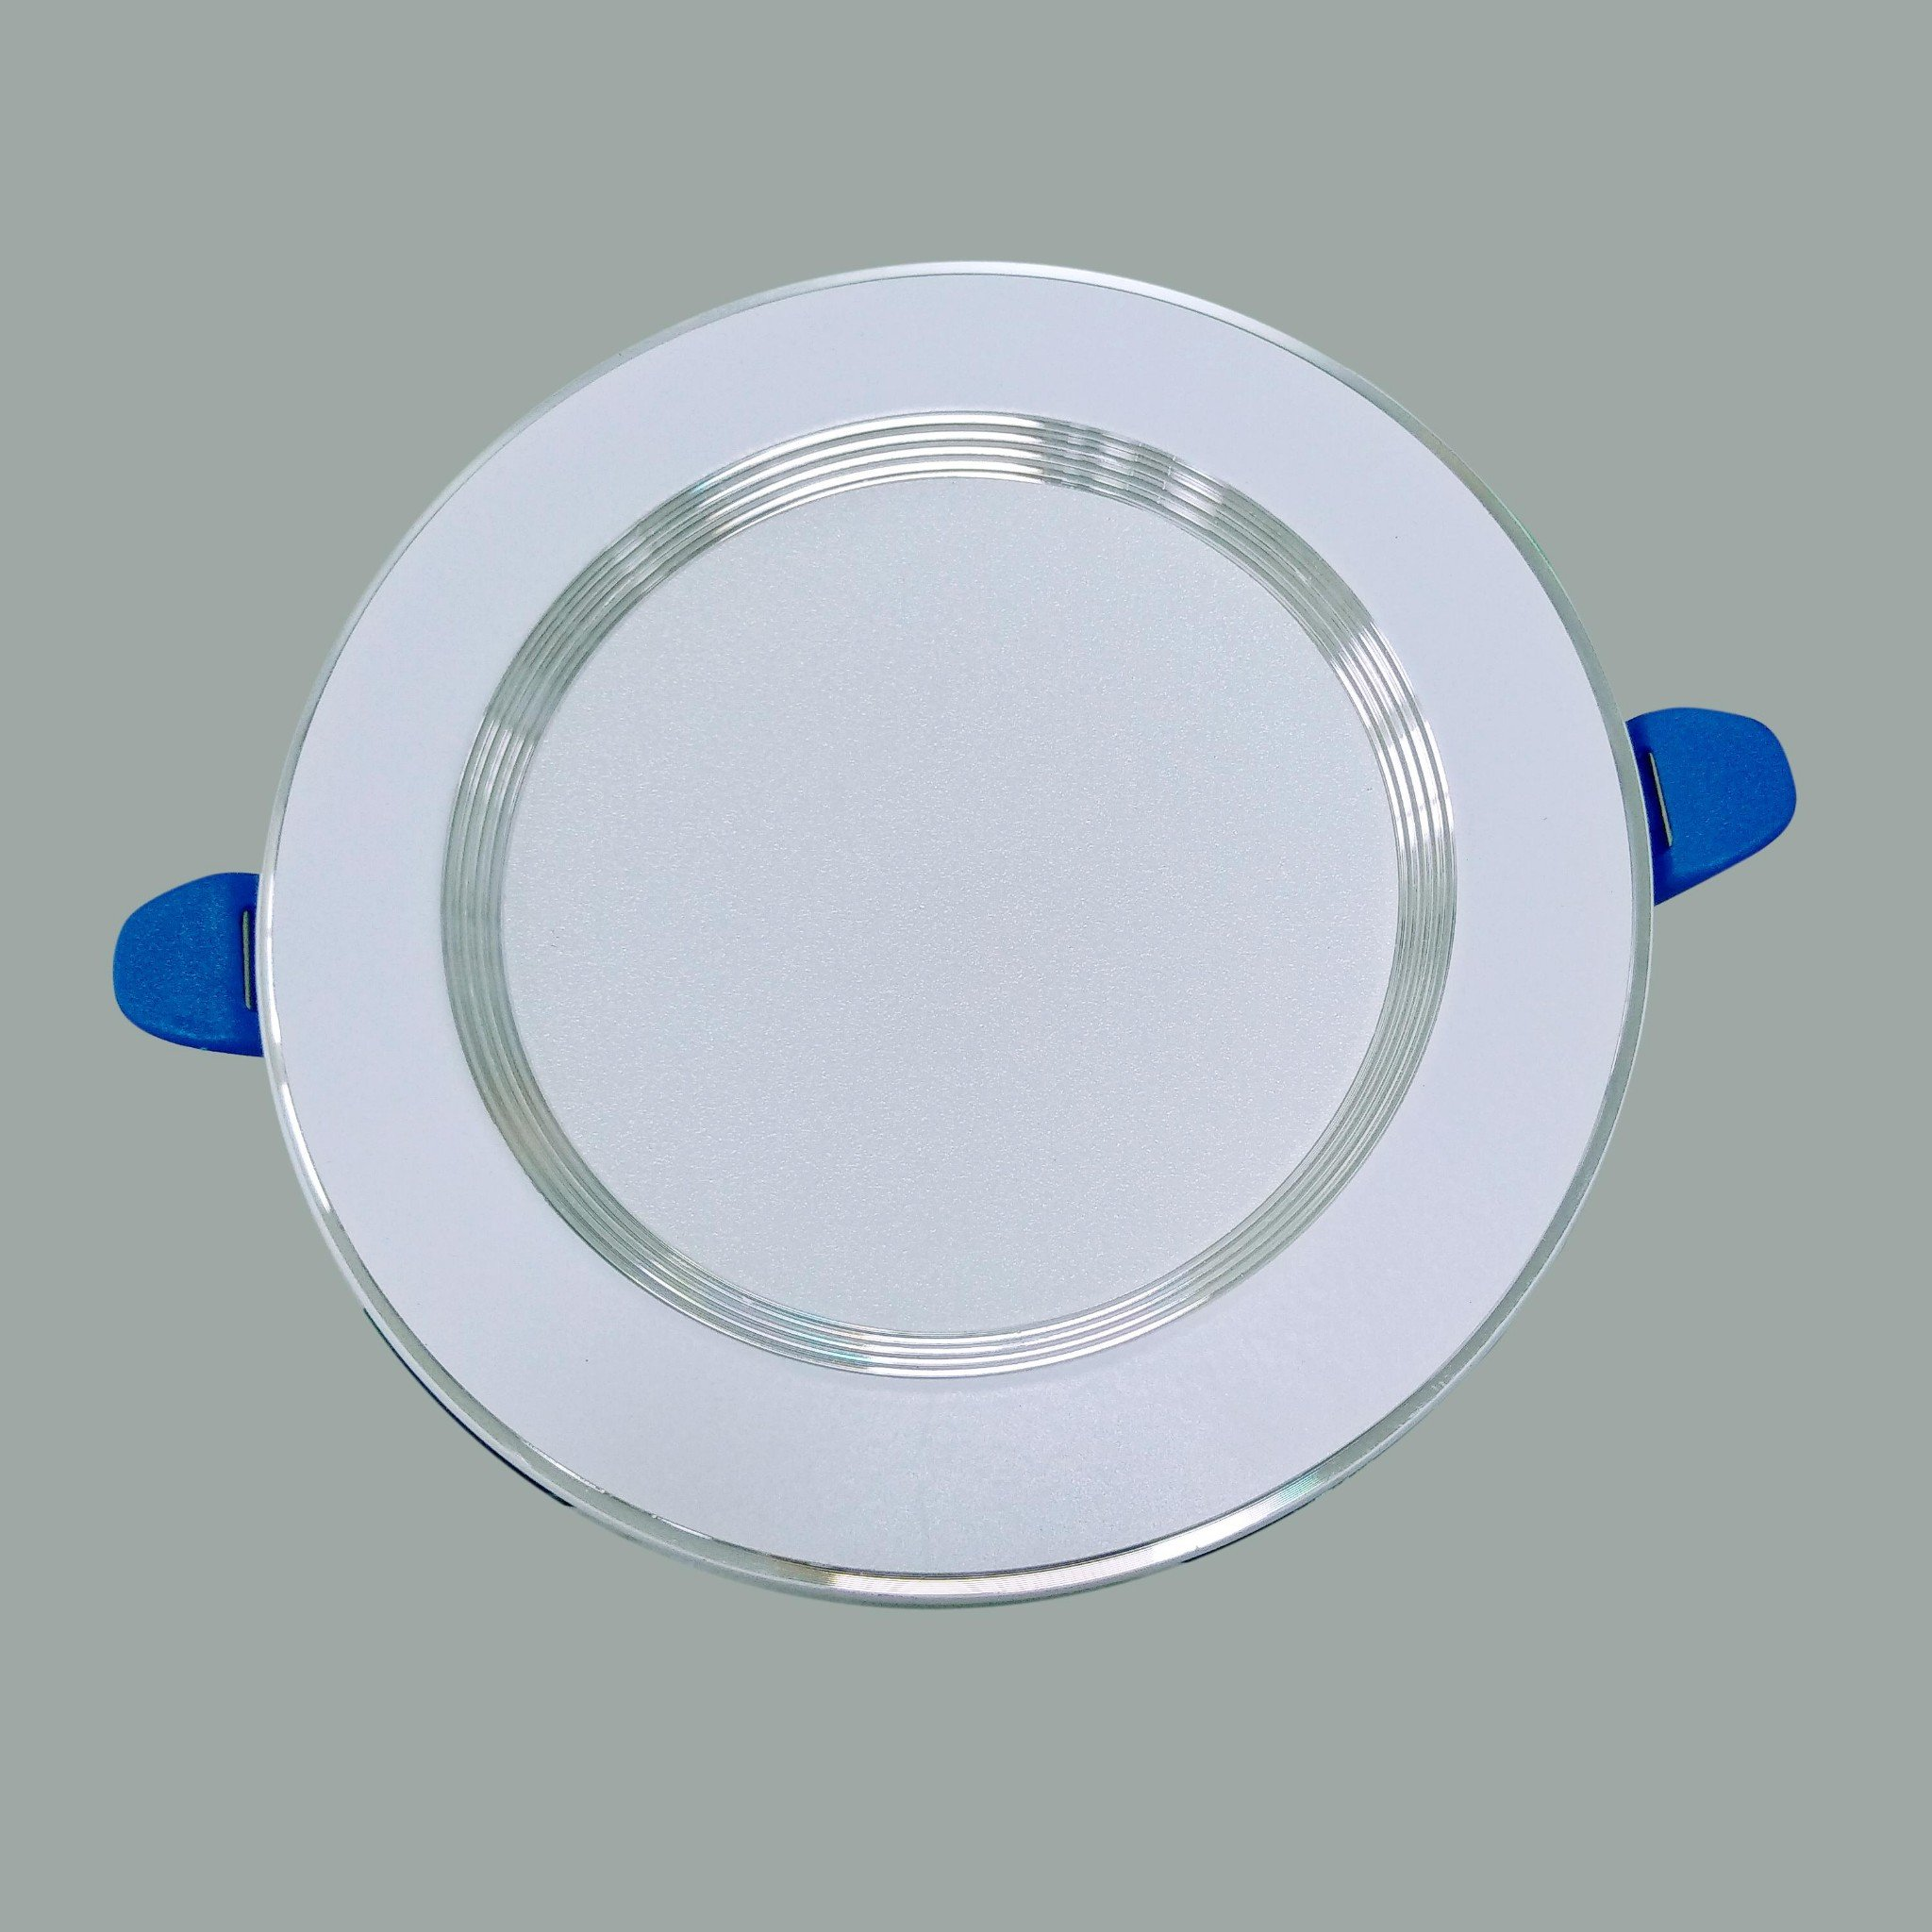 /products/den-led-downlight-vien-bac-doi-mau-d04b-7w